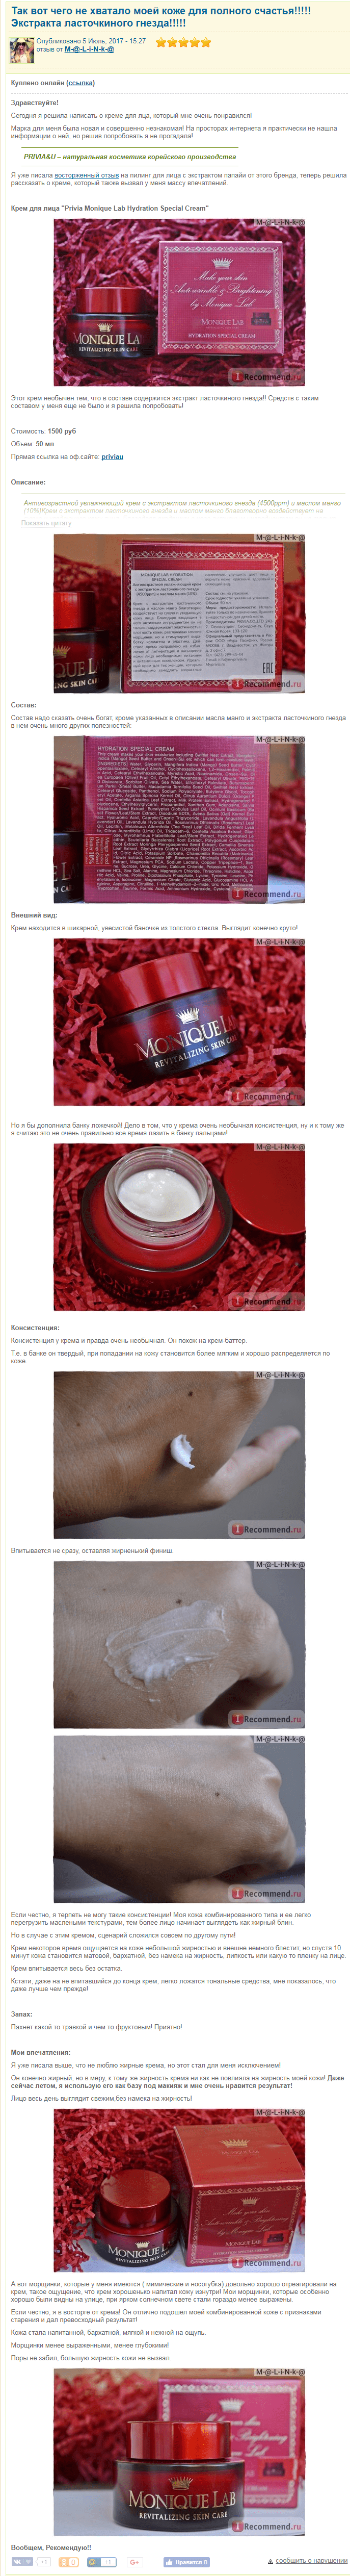 Monique Lab Revitalizing Skin Care Cream-min